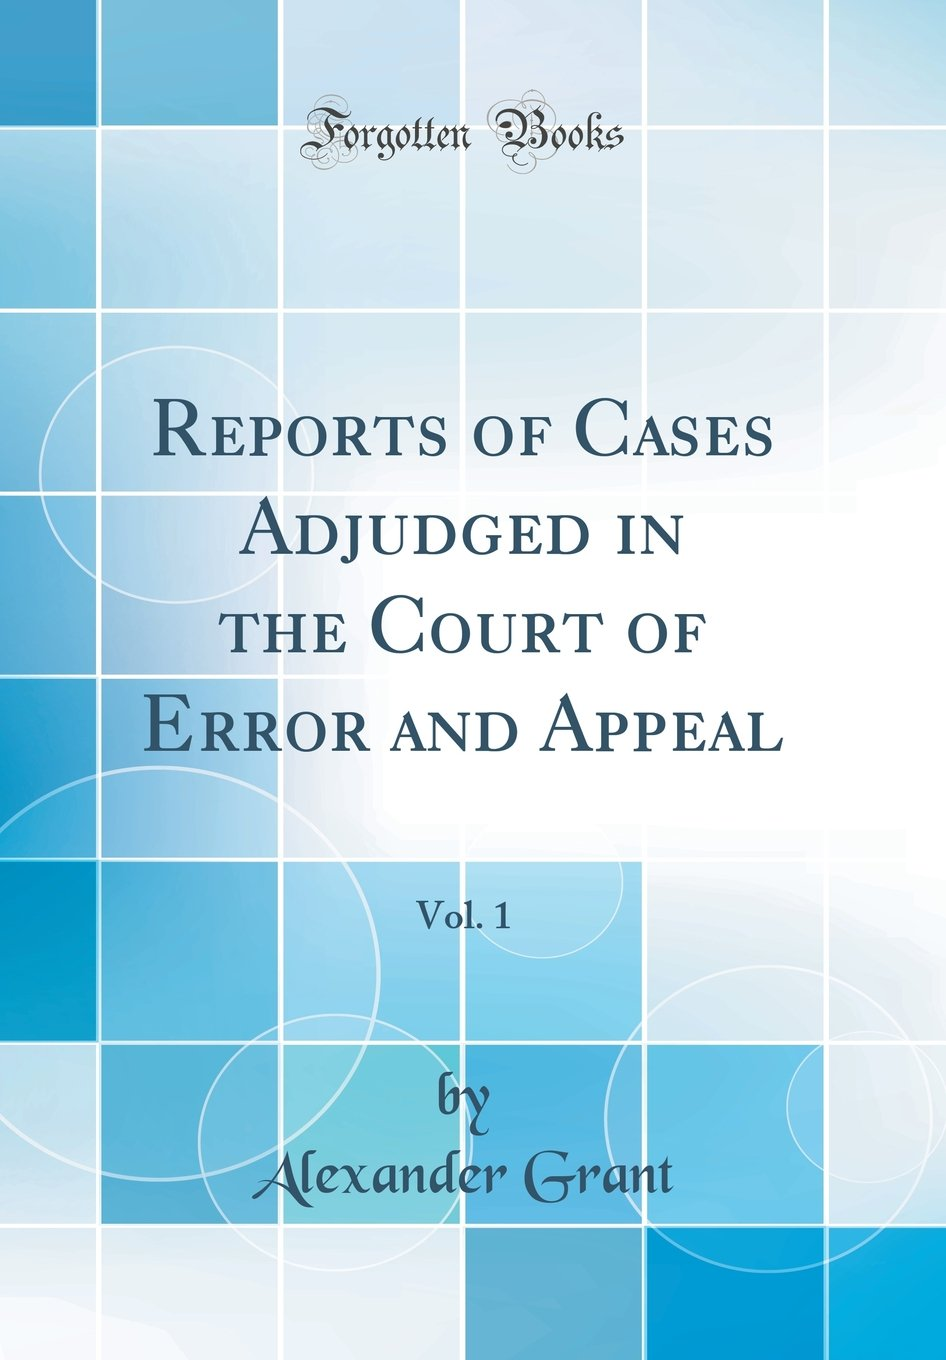 Reports of Cases Adjudged in the Court of Error and Appeal, Vol. 1 (Classic Reprint) PDF